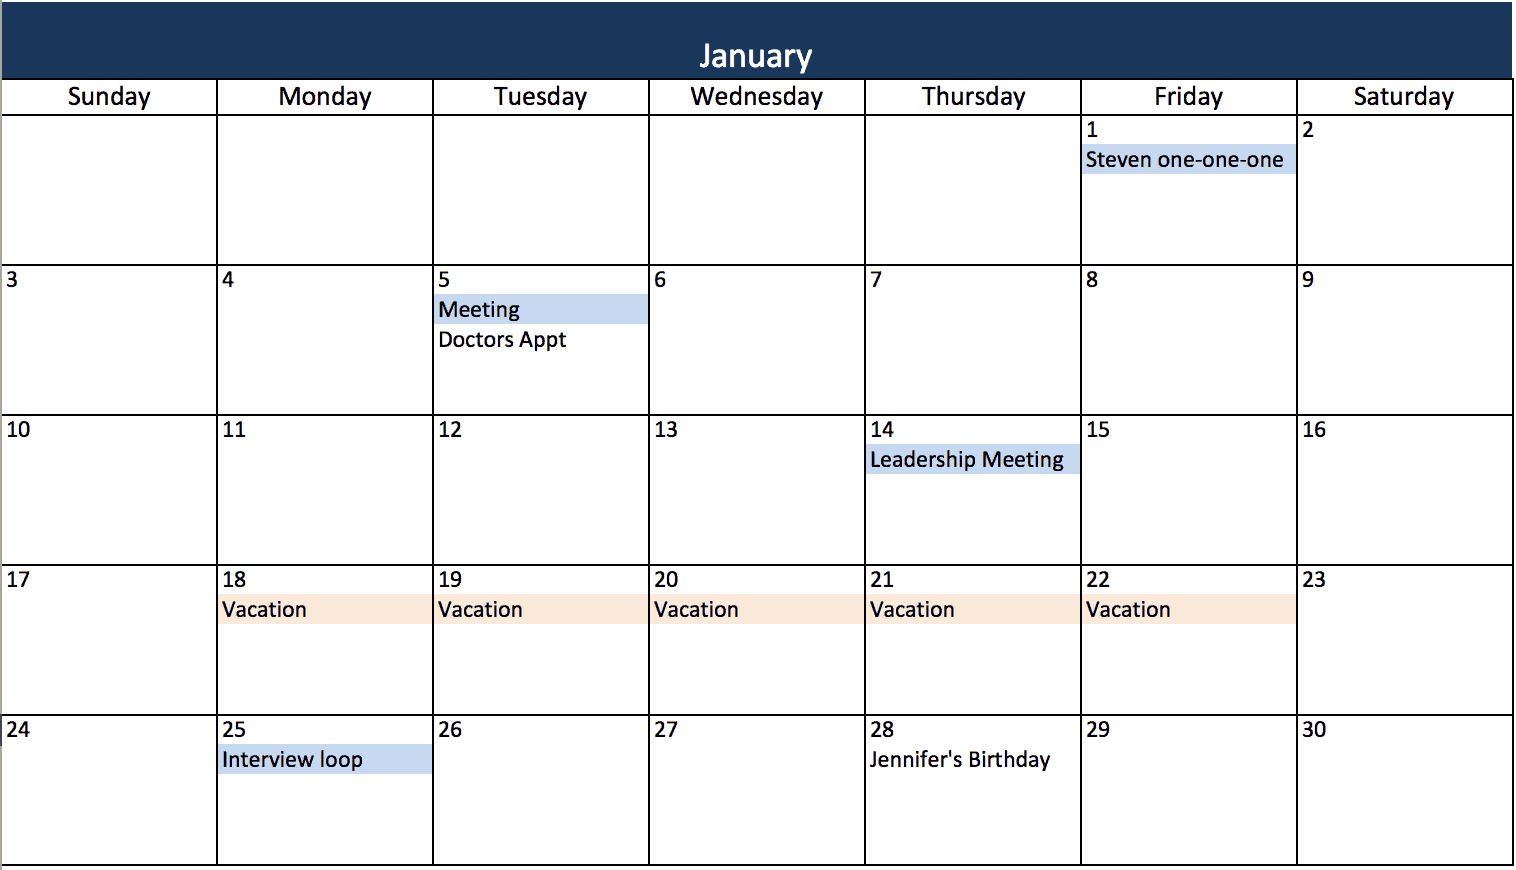 Calendar Sheet Excel : Make a calendar in excel includes free template